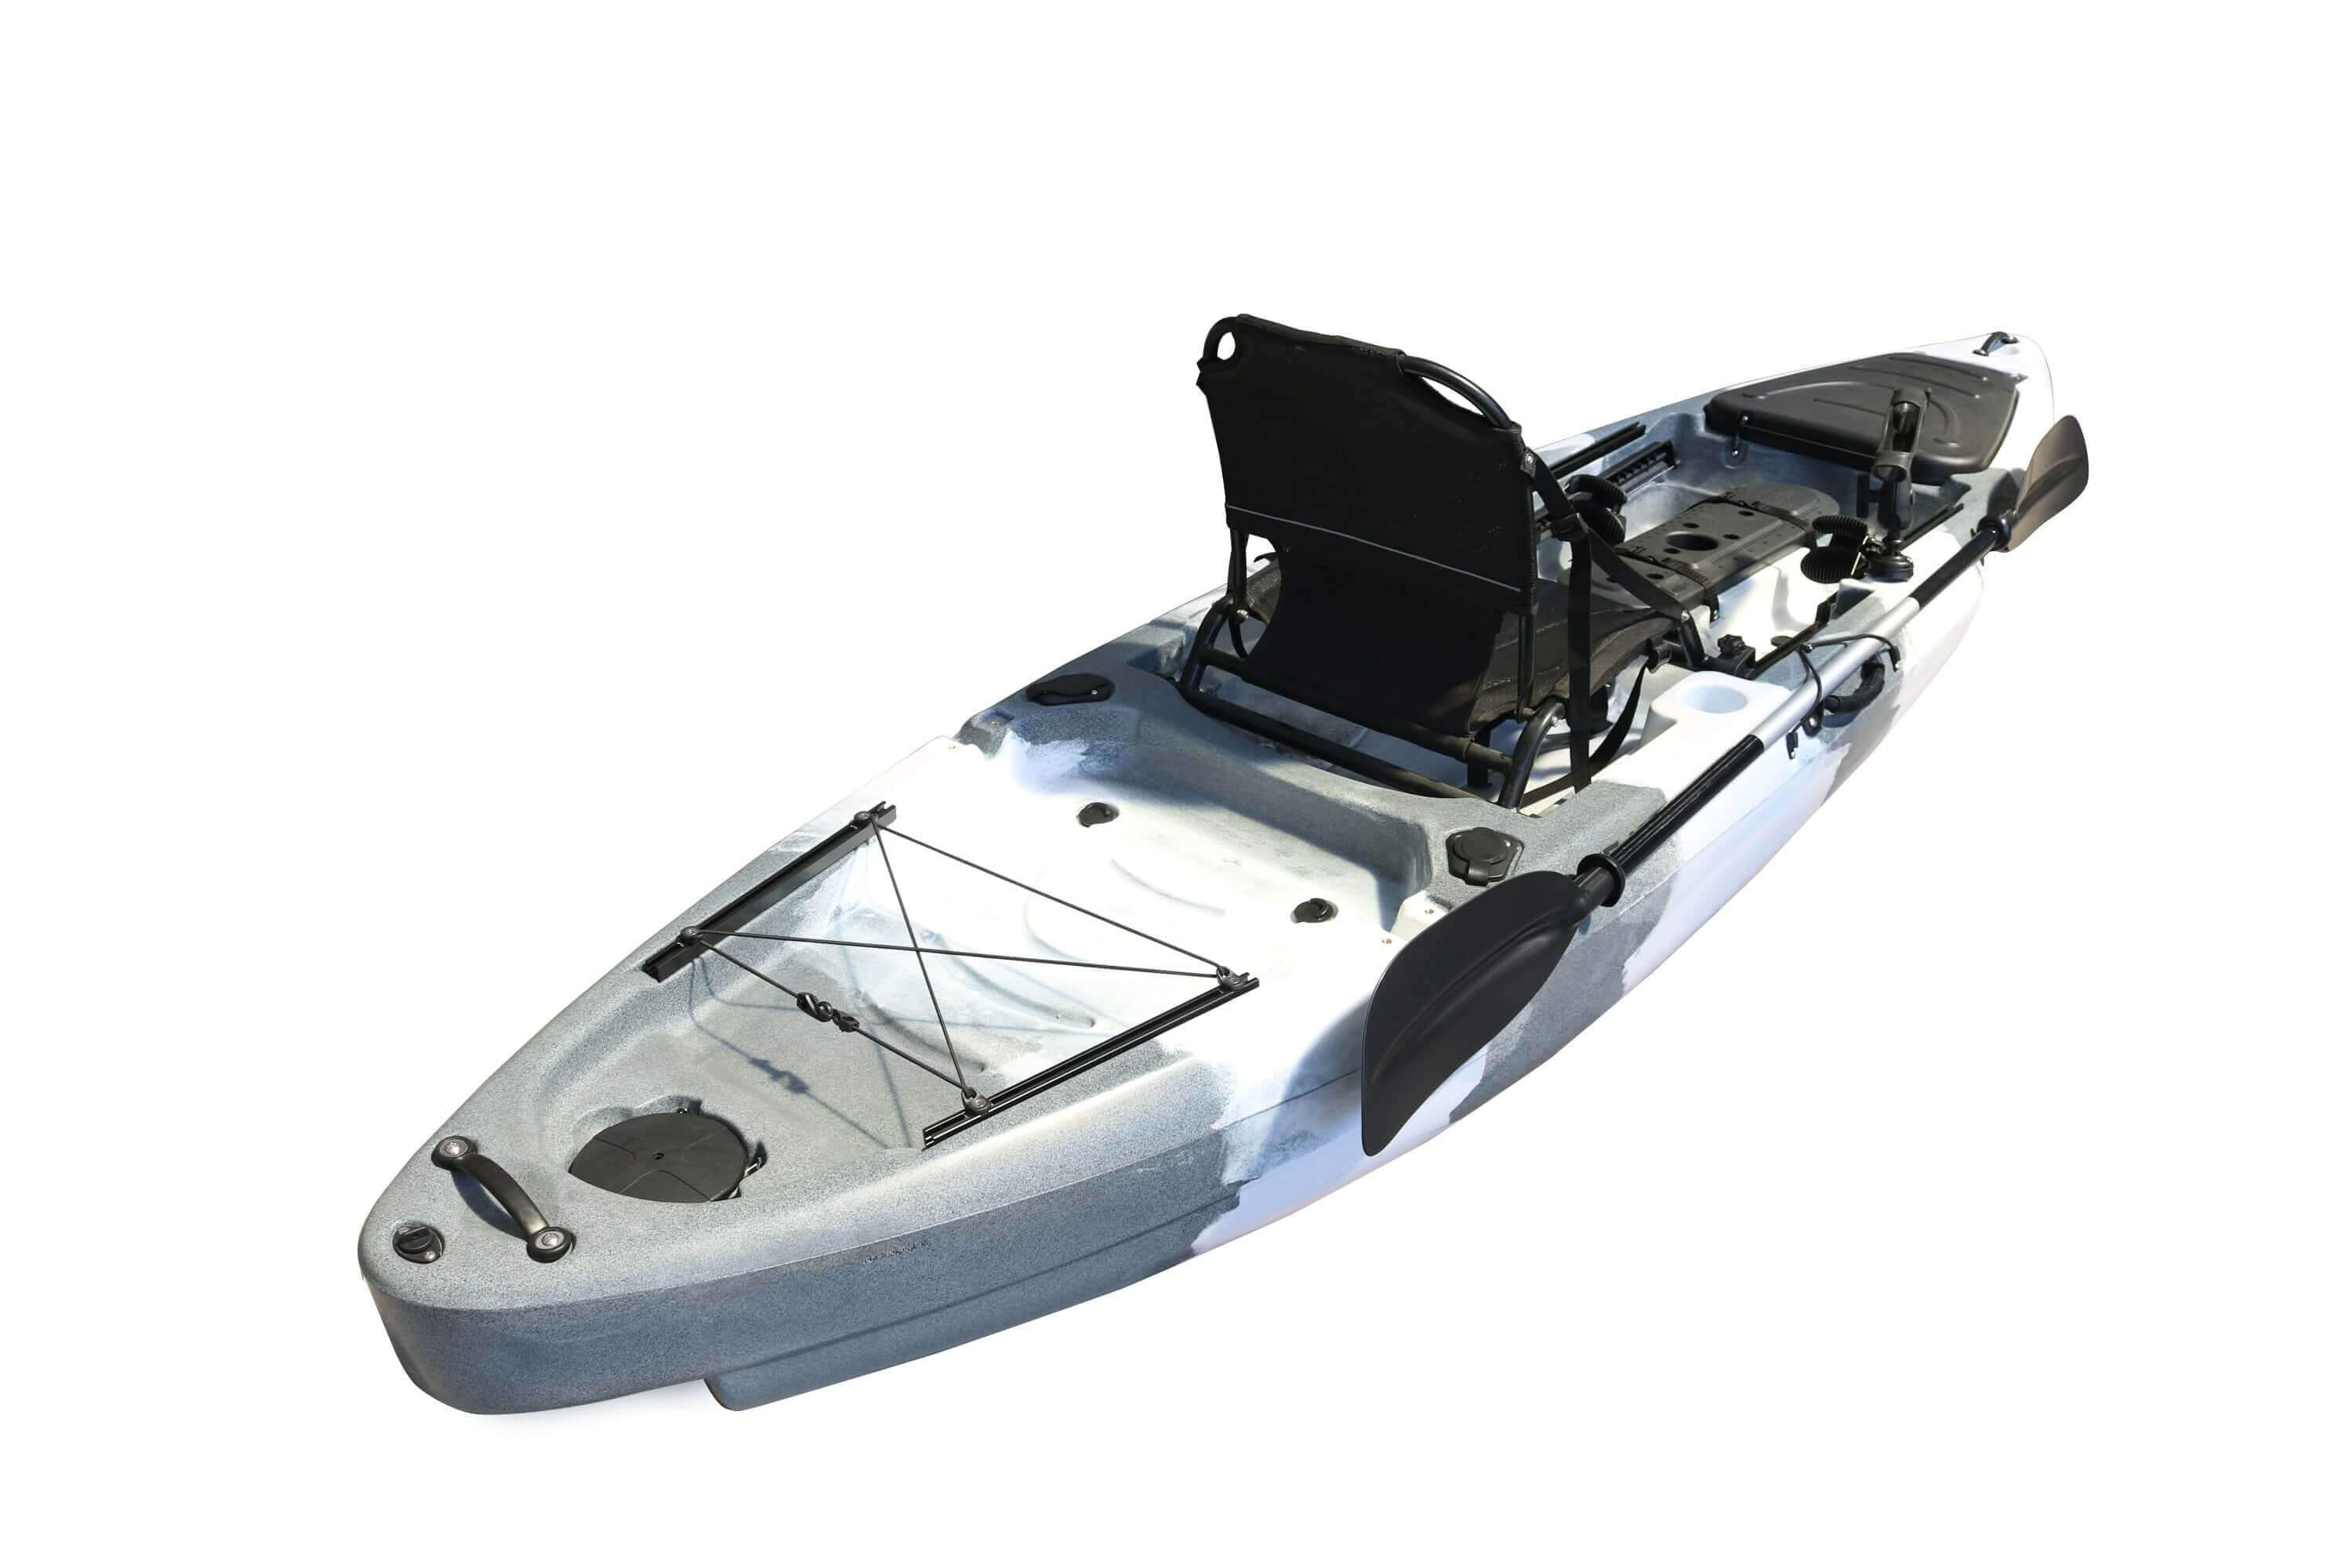 Trevally - 11 Foot Fishing Kayak | Eddy-Gear's Kayak for Fishing!